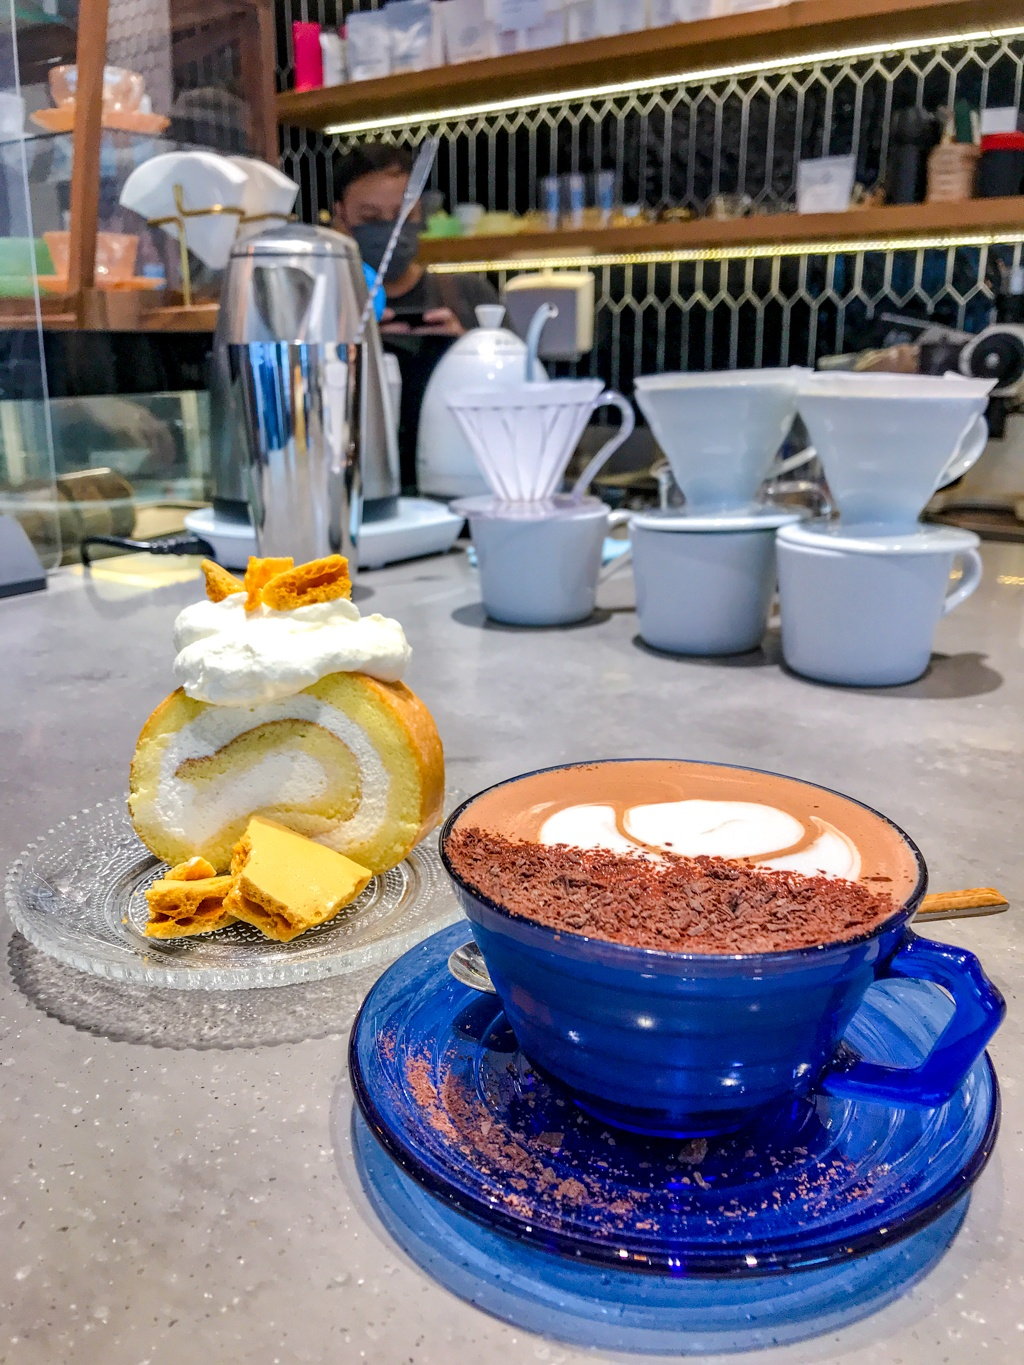 egg roll and hot chocolate at flow sham shui po cafe sham shui po food hong kong - Laugh Travel Eat-2